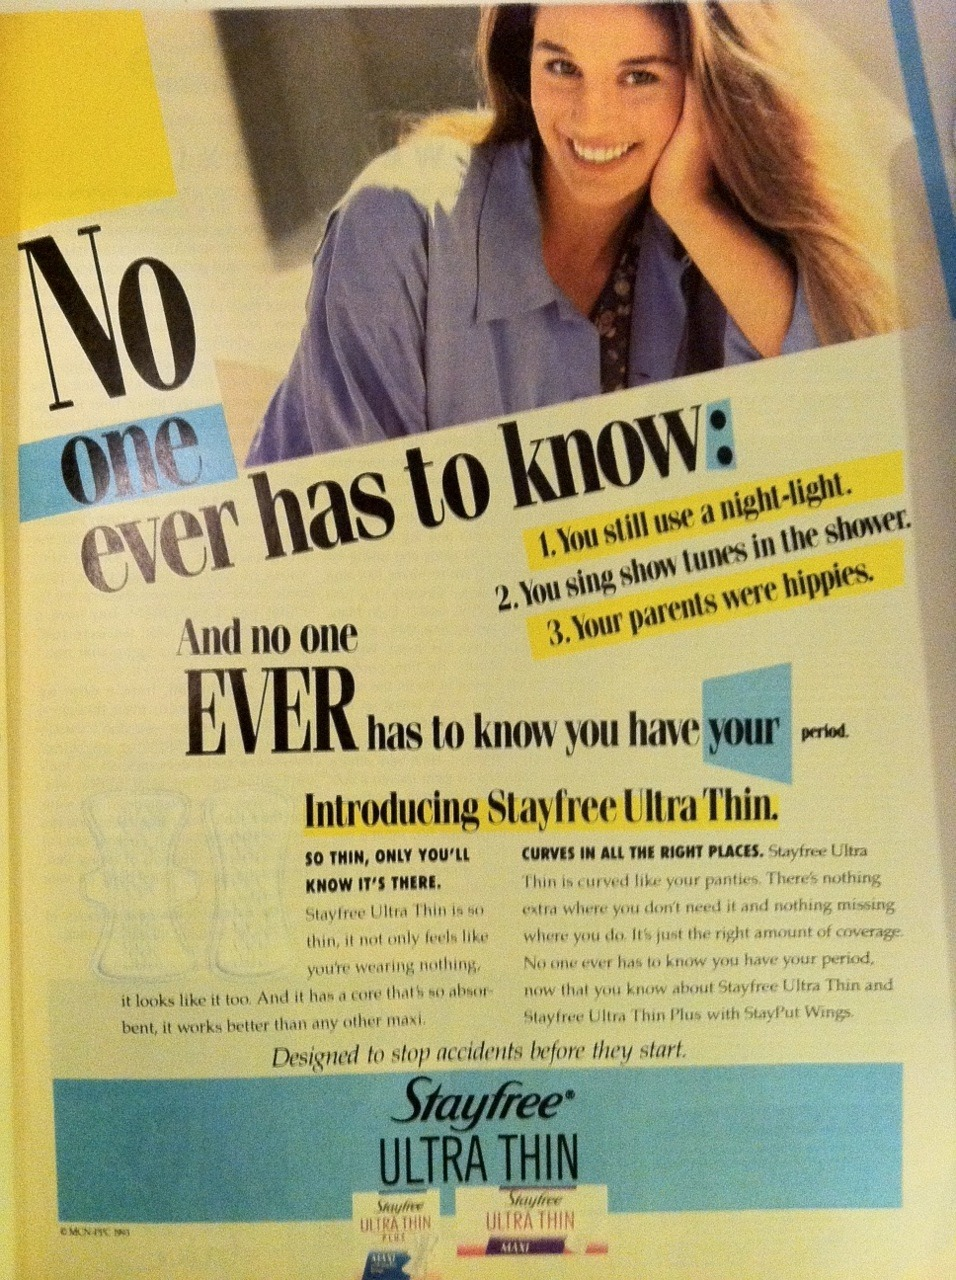 "radarthecat:  I recently came into possession of some old Sassy magazines, from 88-96.  I've been scouring them for collage material and occasionally stopping to read some 90s exposition.  I grew up in the 90s as a teenager and remember a lot of the ads from that time period, specifically when I was about 13.  One recurring theme in these magazines' ads has been these sort of ""your period is shameful and embarrassing"" message.  Even at 13, I remember thinking, why the fuck would I give a shit if someone knows I'm on my period?  I guess we've come a long way as they say.  It seems like now period ads are all about being proud and strong. Not too long after that, I started listening to this band called Heavens to Betsy.  The singer later went on to form the cult guitar band Sleater-Kinney.  Anyway, they put out a 7"" with a song called 'My Red Self' that comments on this idea that girls should be embarrassed about having their rag. I would include the video here, but I'm new to tumblr and haven't figured out how to embed videos.  But you can check out the Heavens to Betsy song My Red Self: http://www.youtube.com/watch?v=DZ3Aor3aJpY"